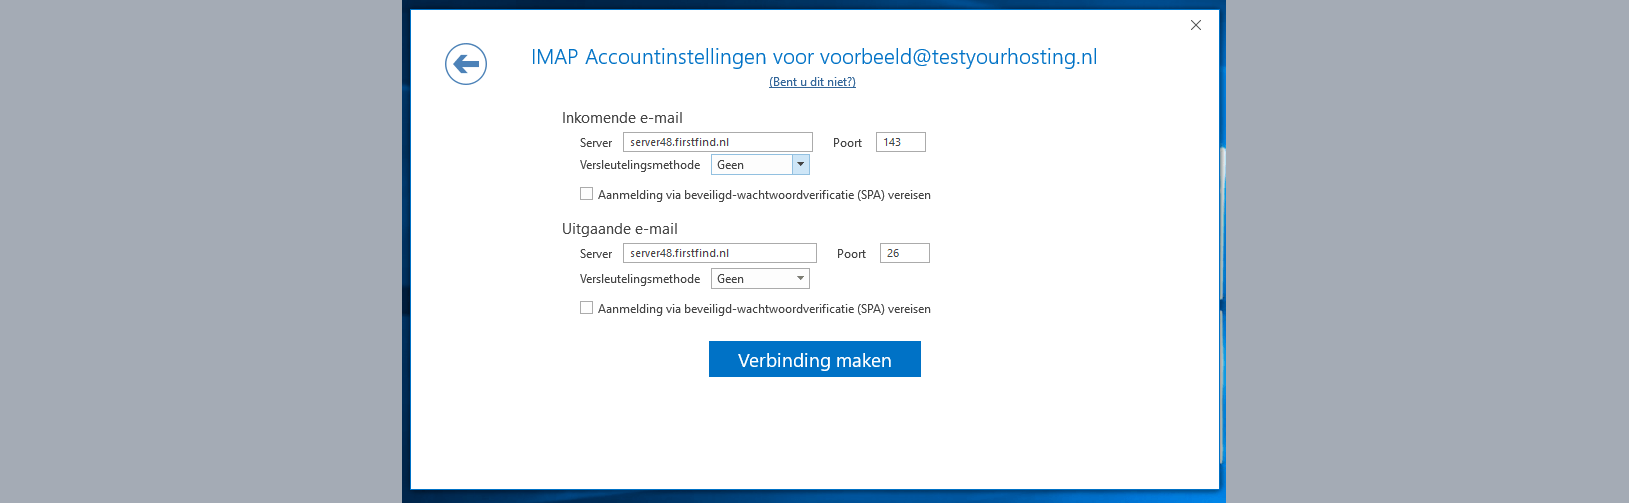 imap accountinstellingen outlook 2016